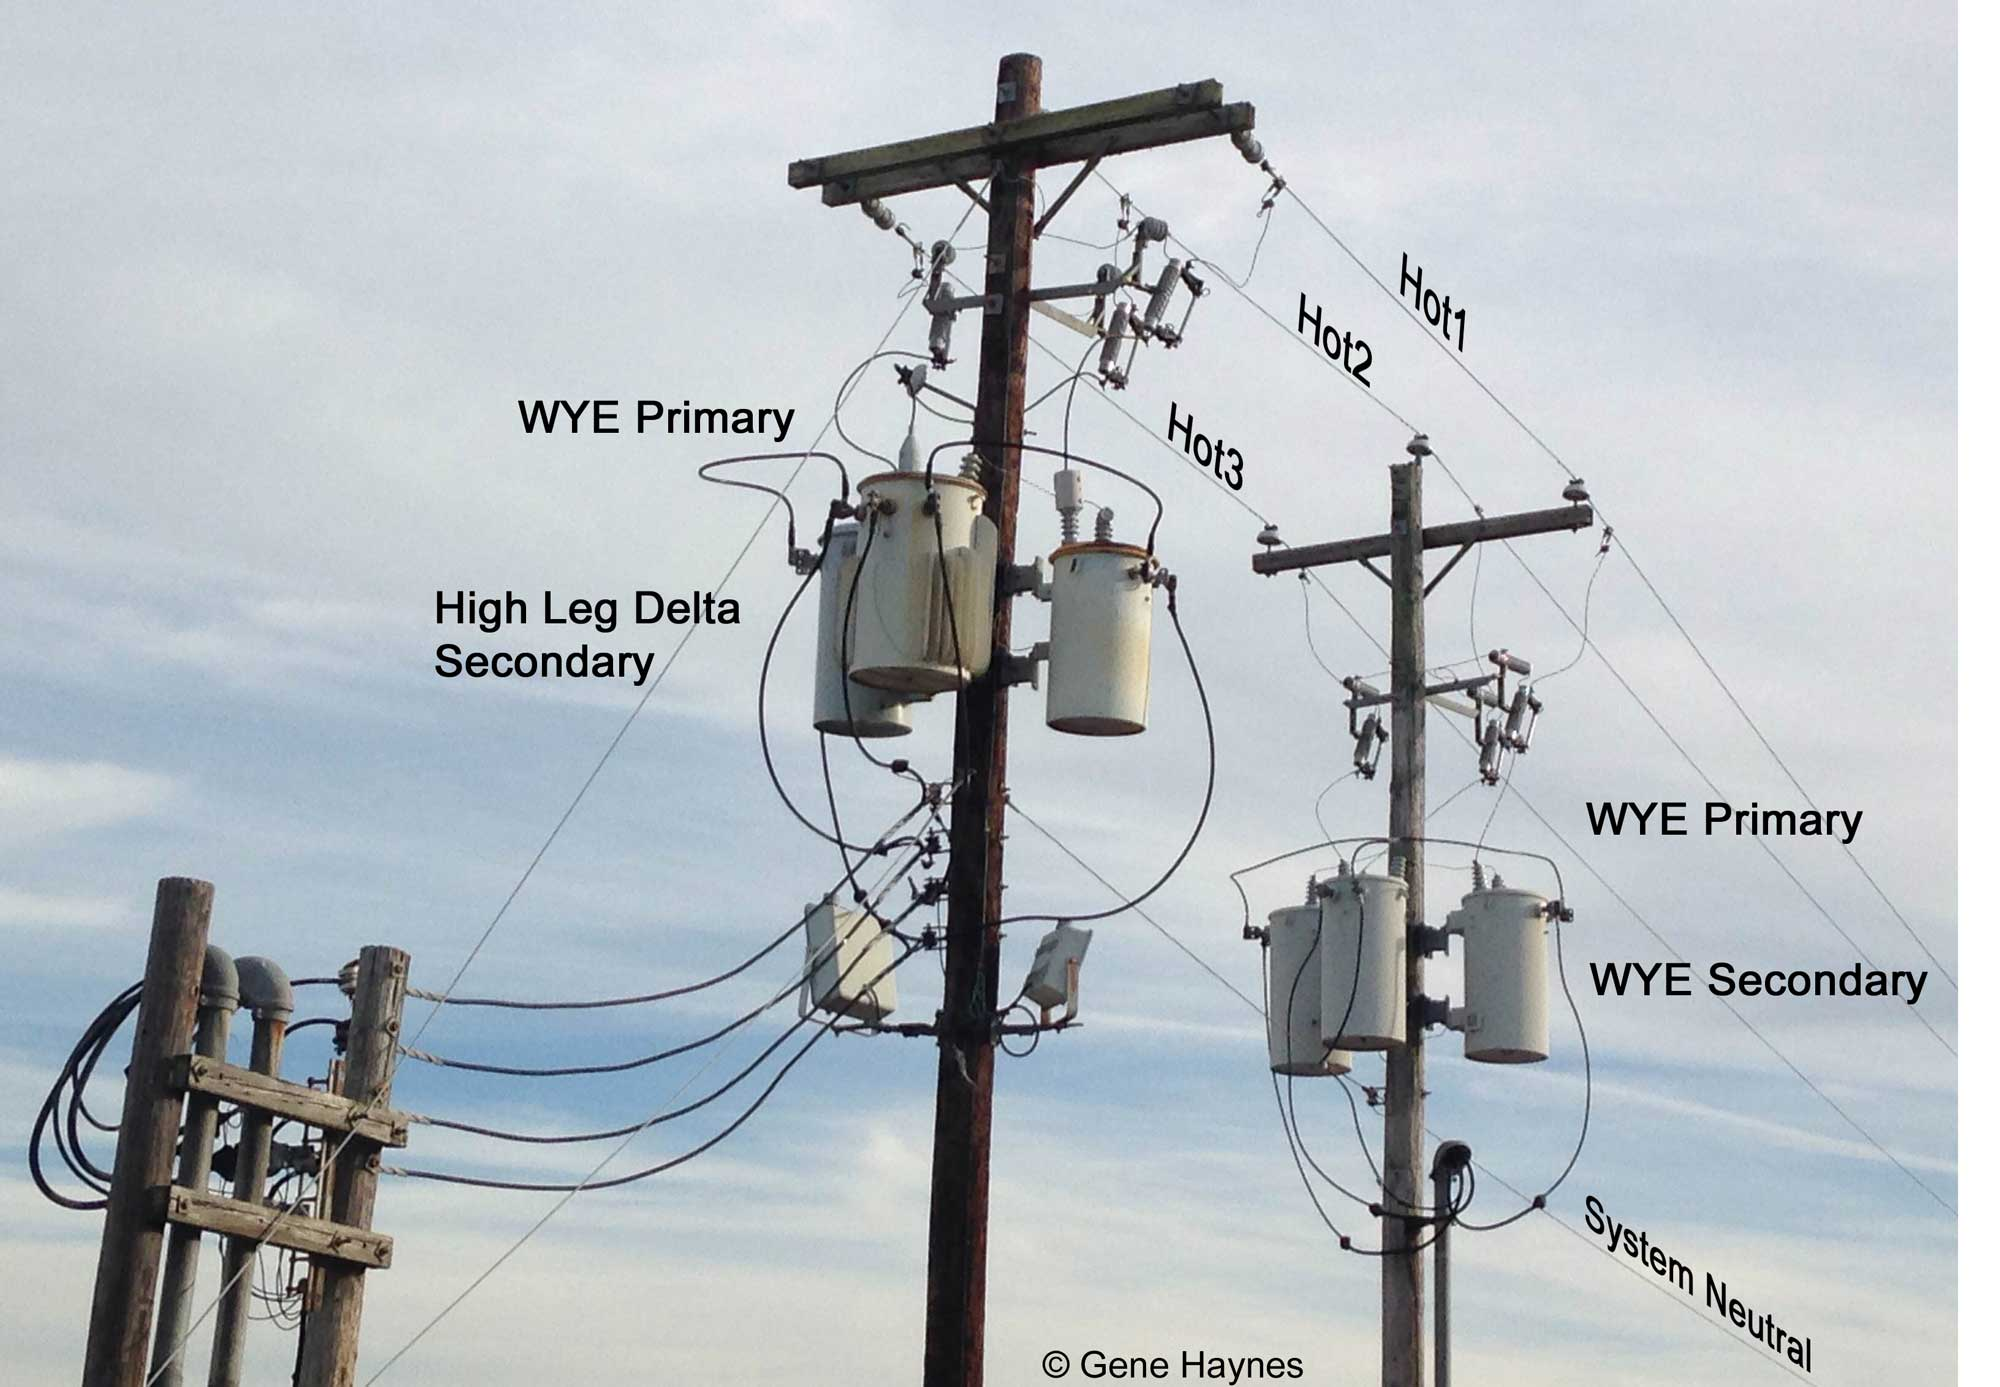 hight resolution of fig 3 wye and delta services to identify high leg delta 3 wires come off center transformer and 1 wire off 1 transformer